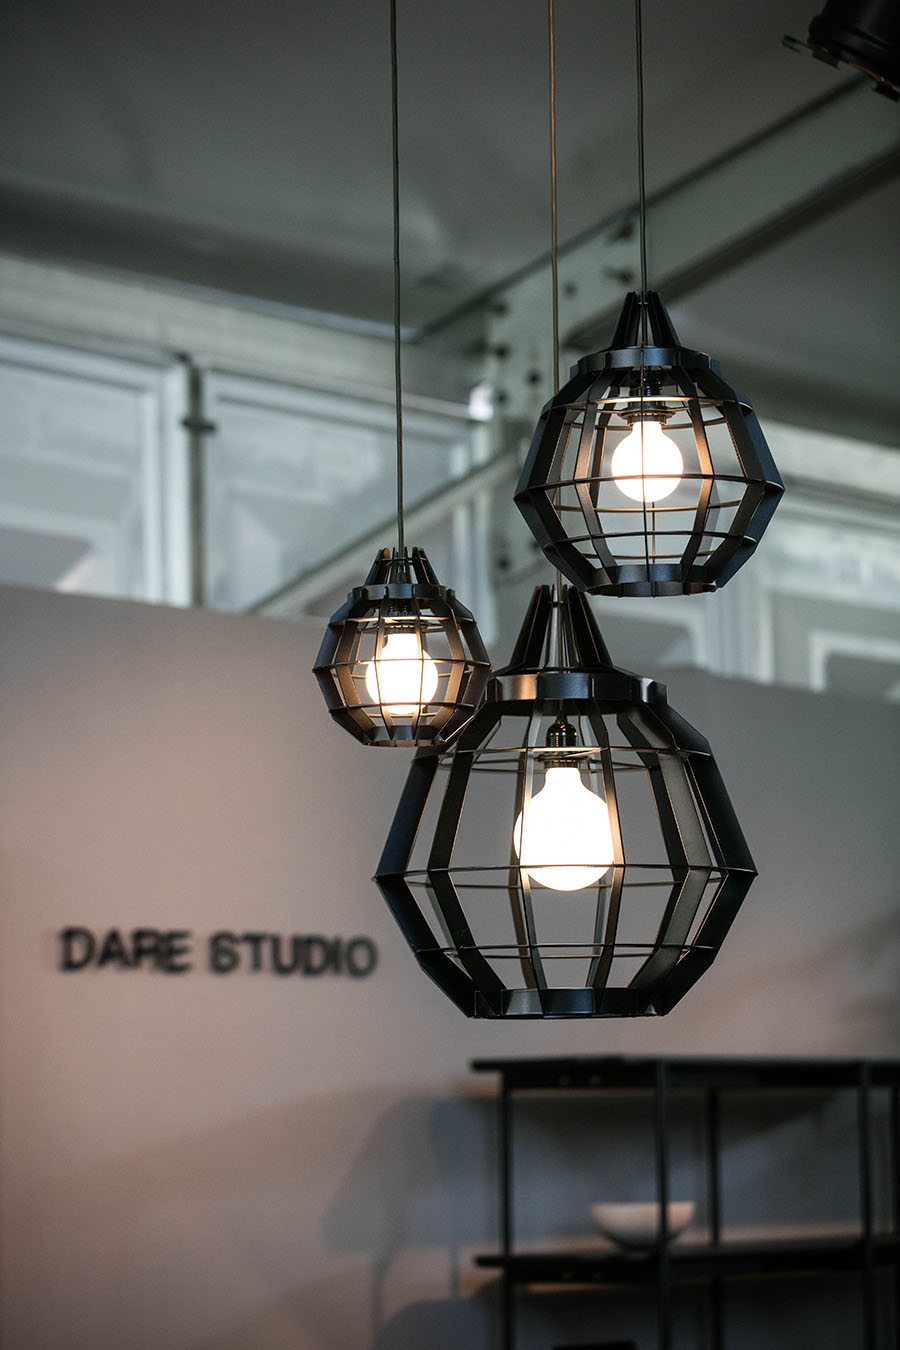 Clerkenwell Design Week 2019 Everything You Need to Know - Dare Studio clerkenwell design week Clerkenwell Design Week 2019: Everything You Need to Know Clerkenwell Design Week 2019 Everything You Need to Know Dare Studio